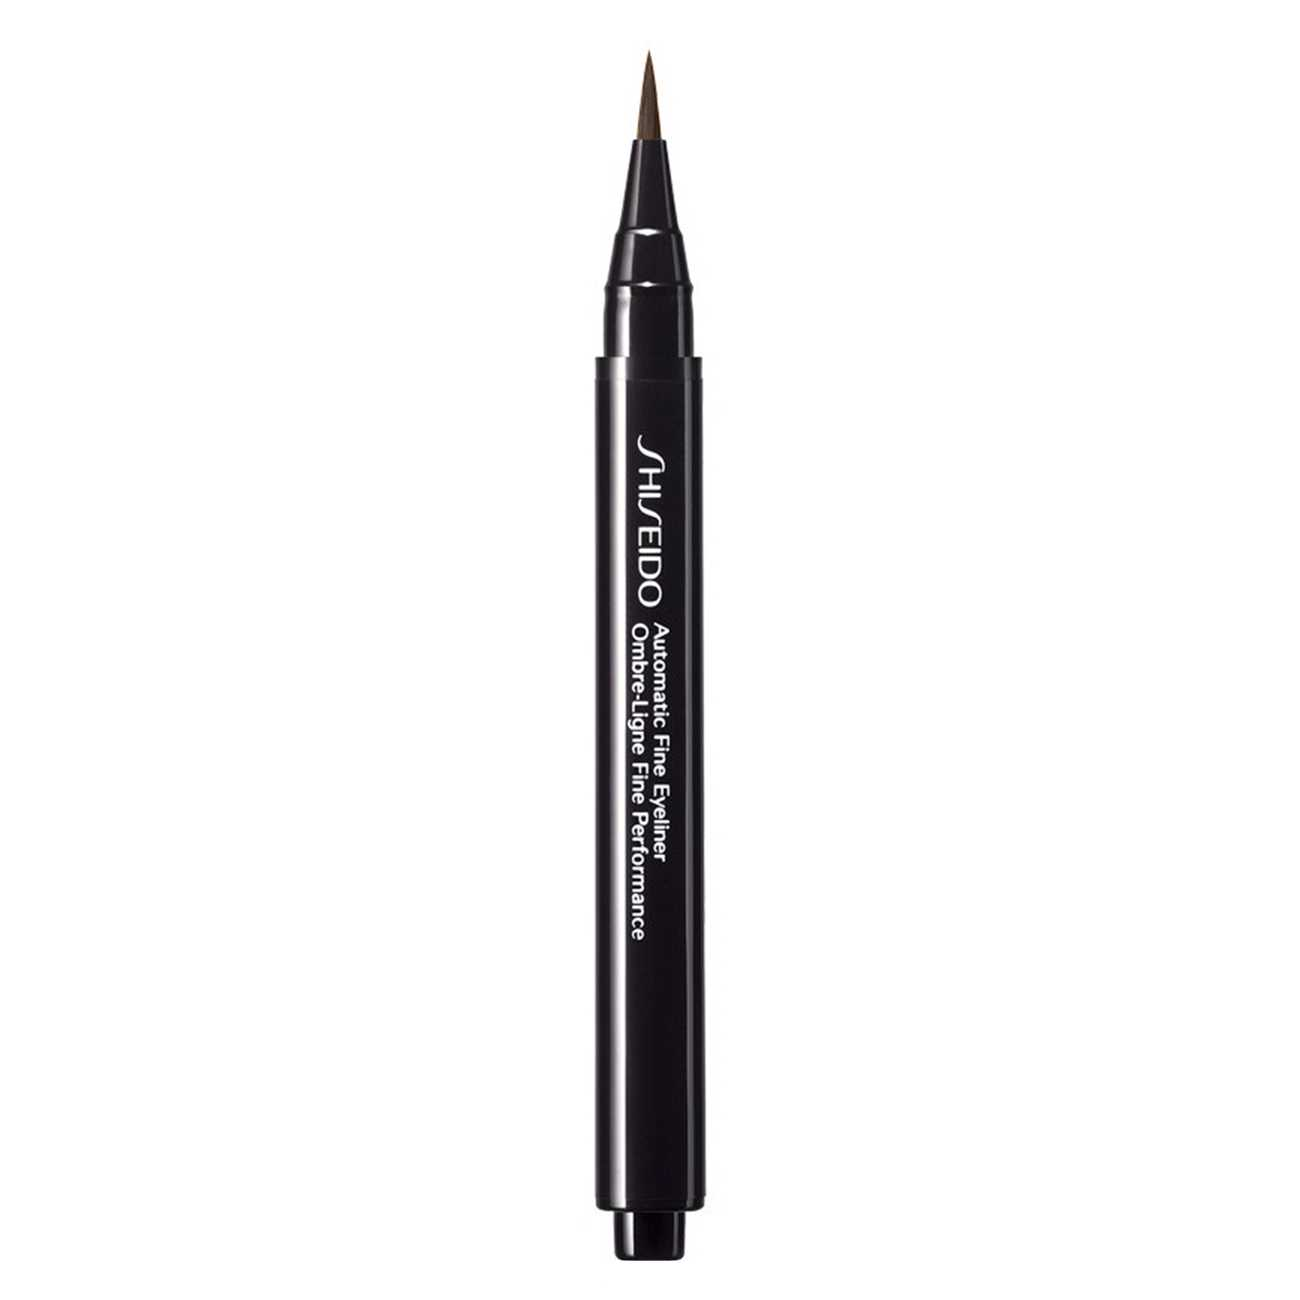 AUTOMATIC FINE EYELINER 1.4 ML BROWN Br602